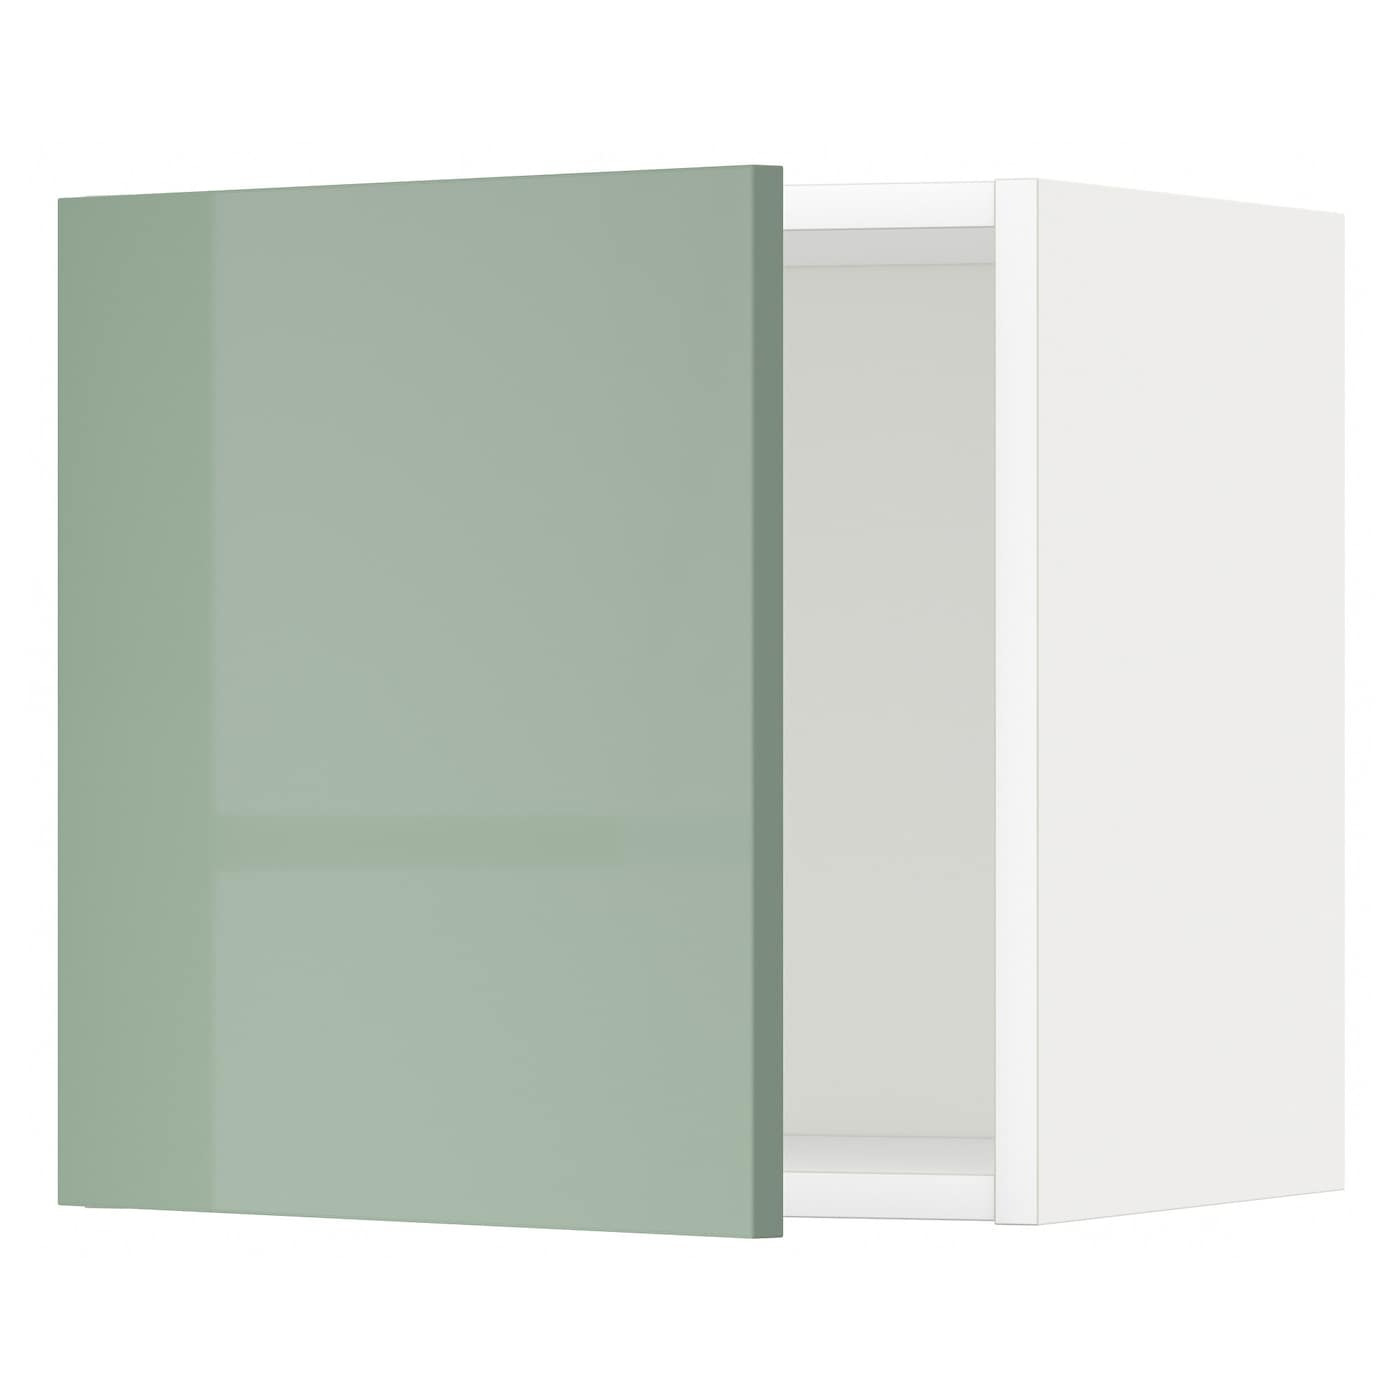 metod wall cabinet white kallarp light green 40x40 cm ikea. Black Bedroom Furniture Sets. Home Design Ideas